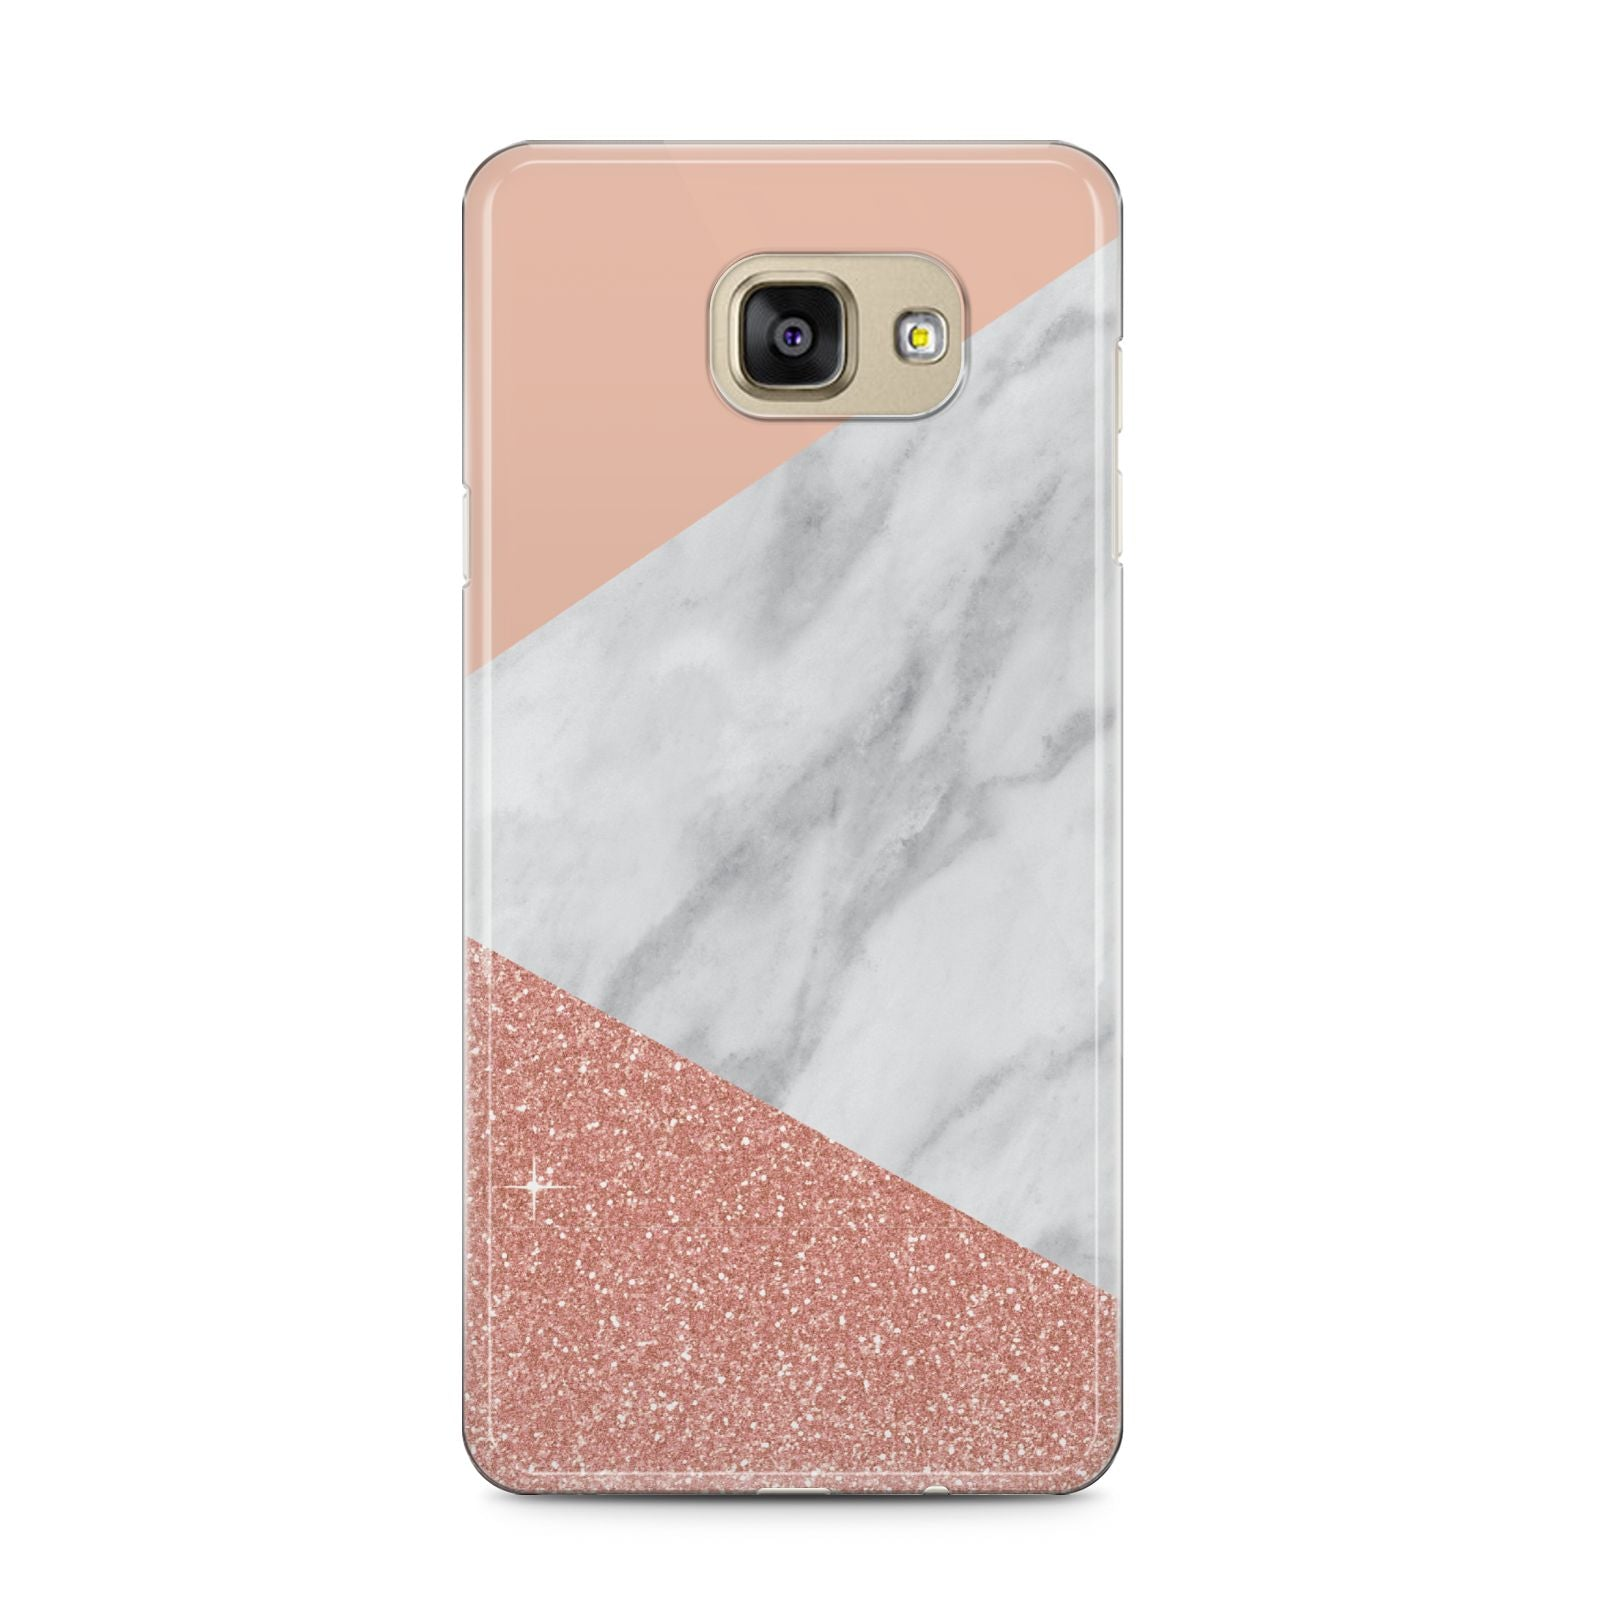 Marble White Rose Gold Samsung Galaxy A5 2016 Case on gold phone